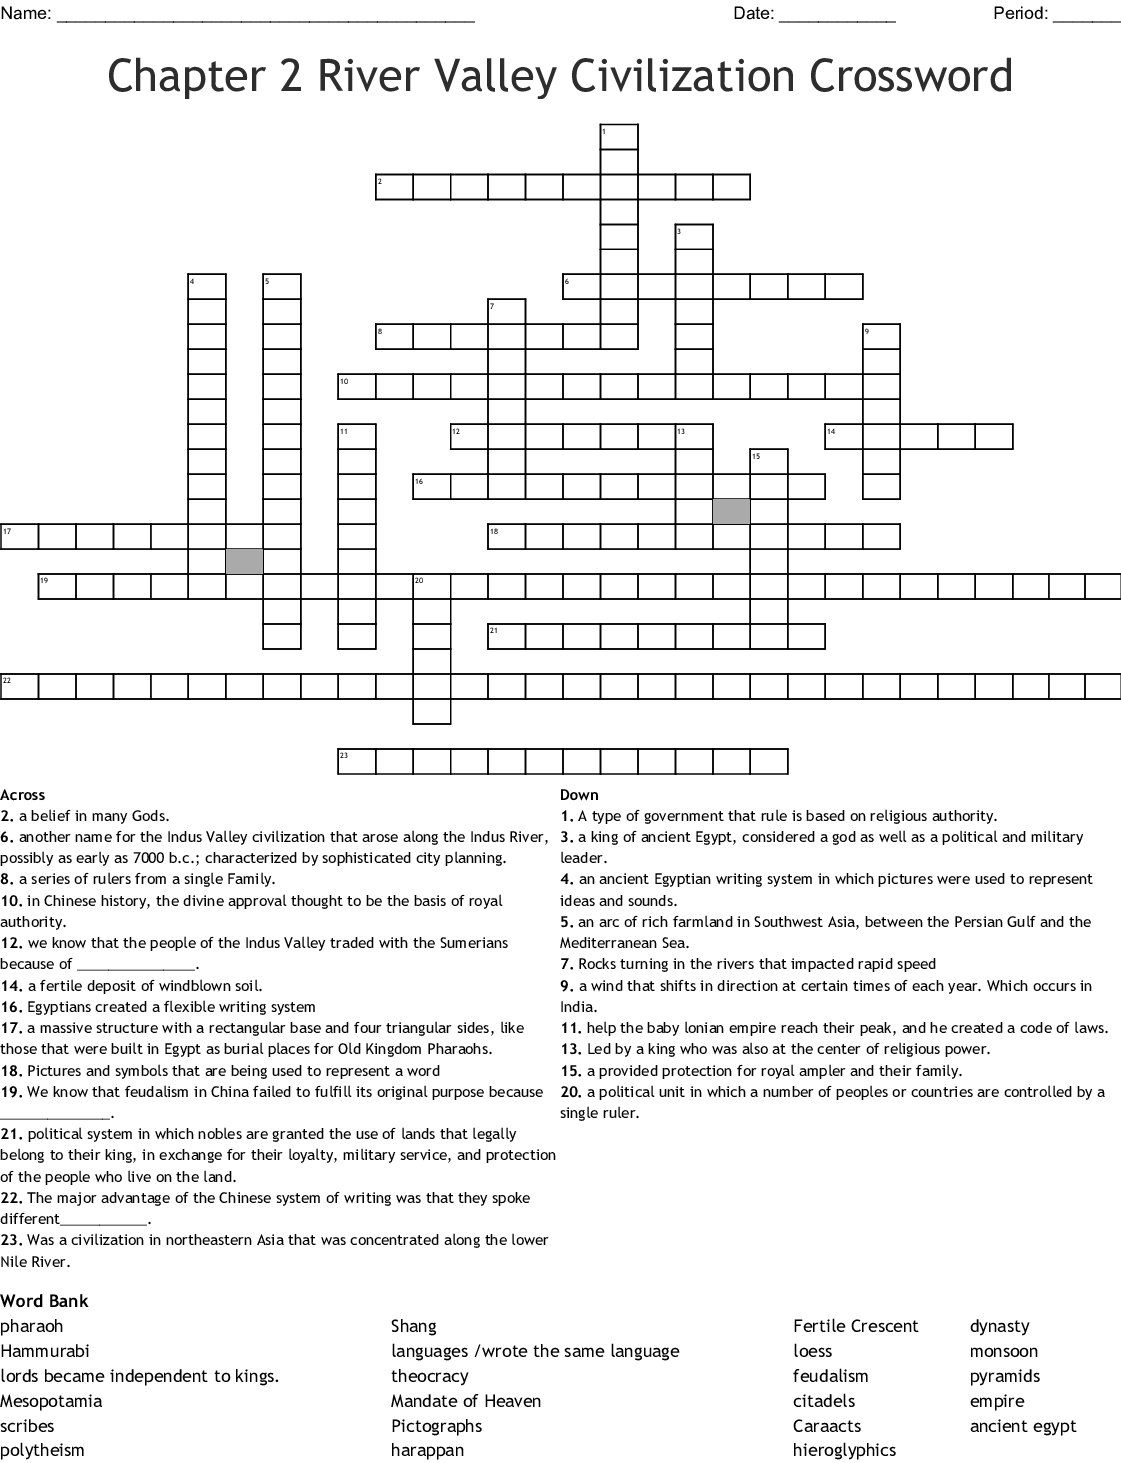 Early River Valley Civilizations Word Search